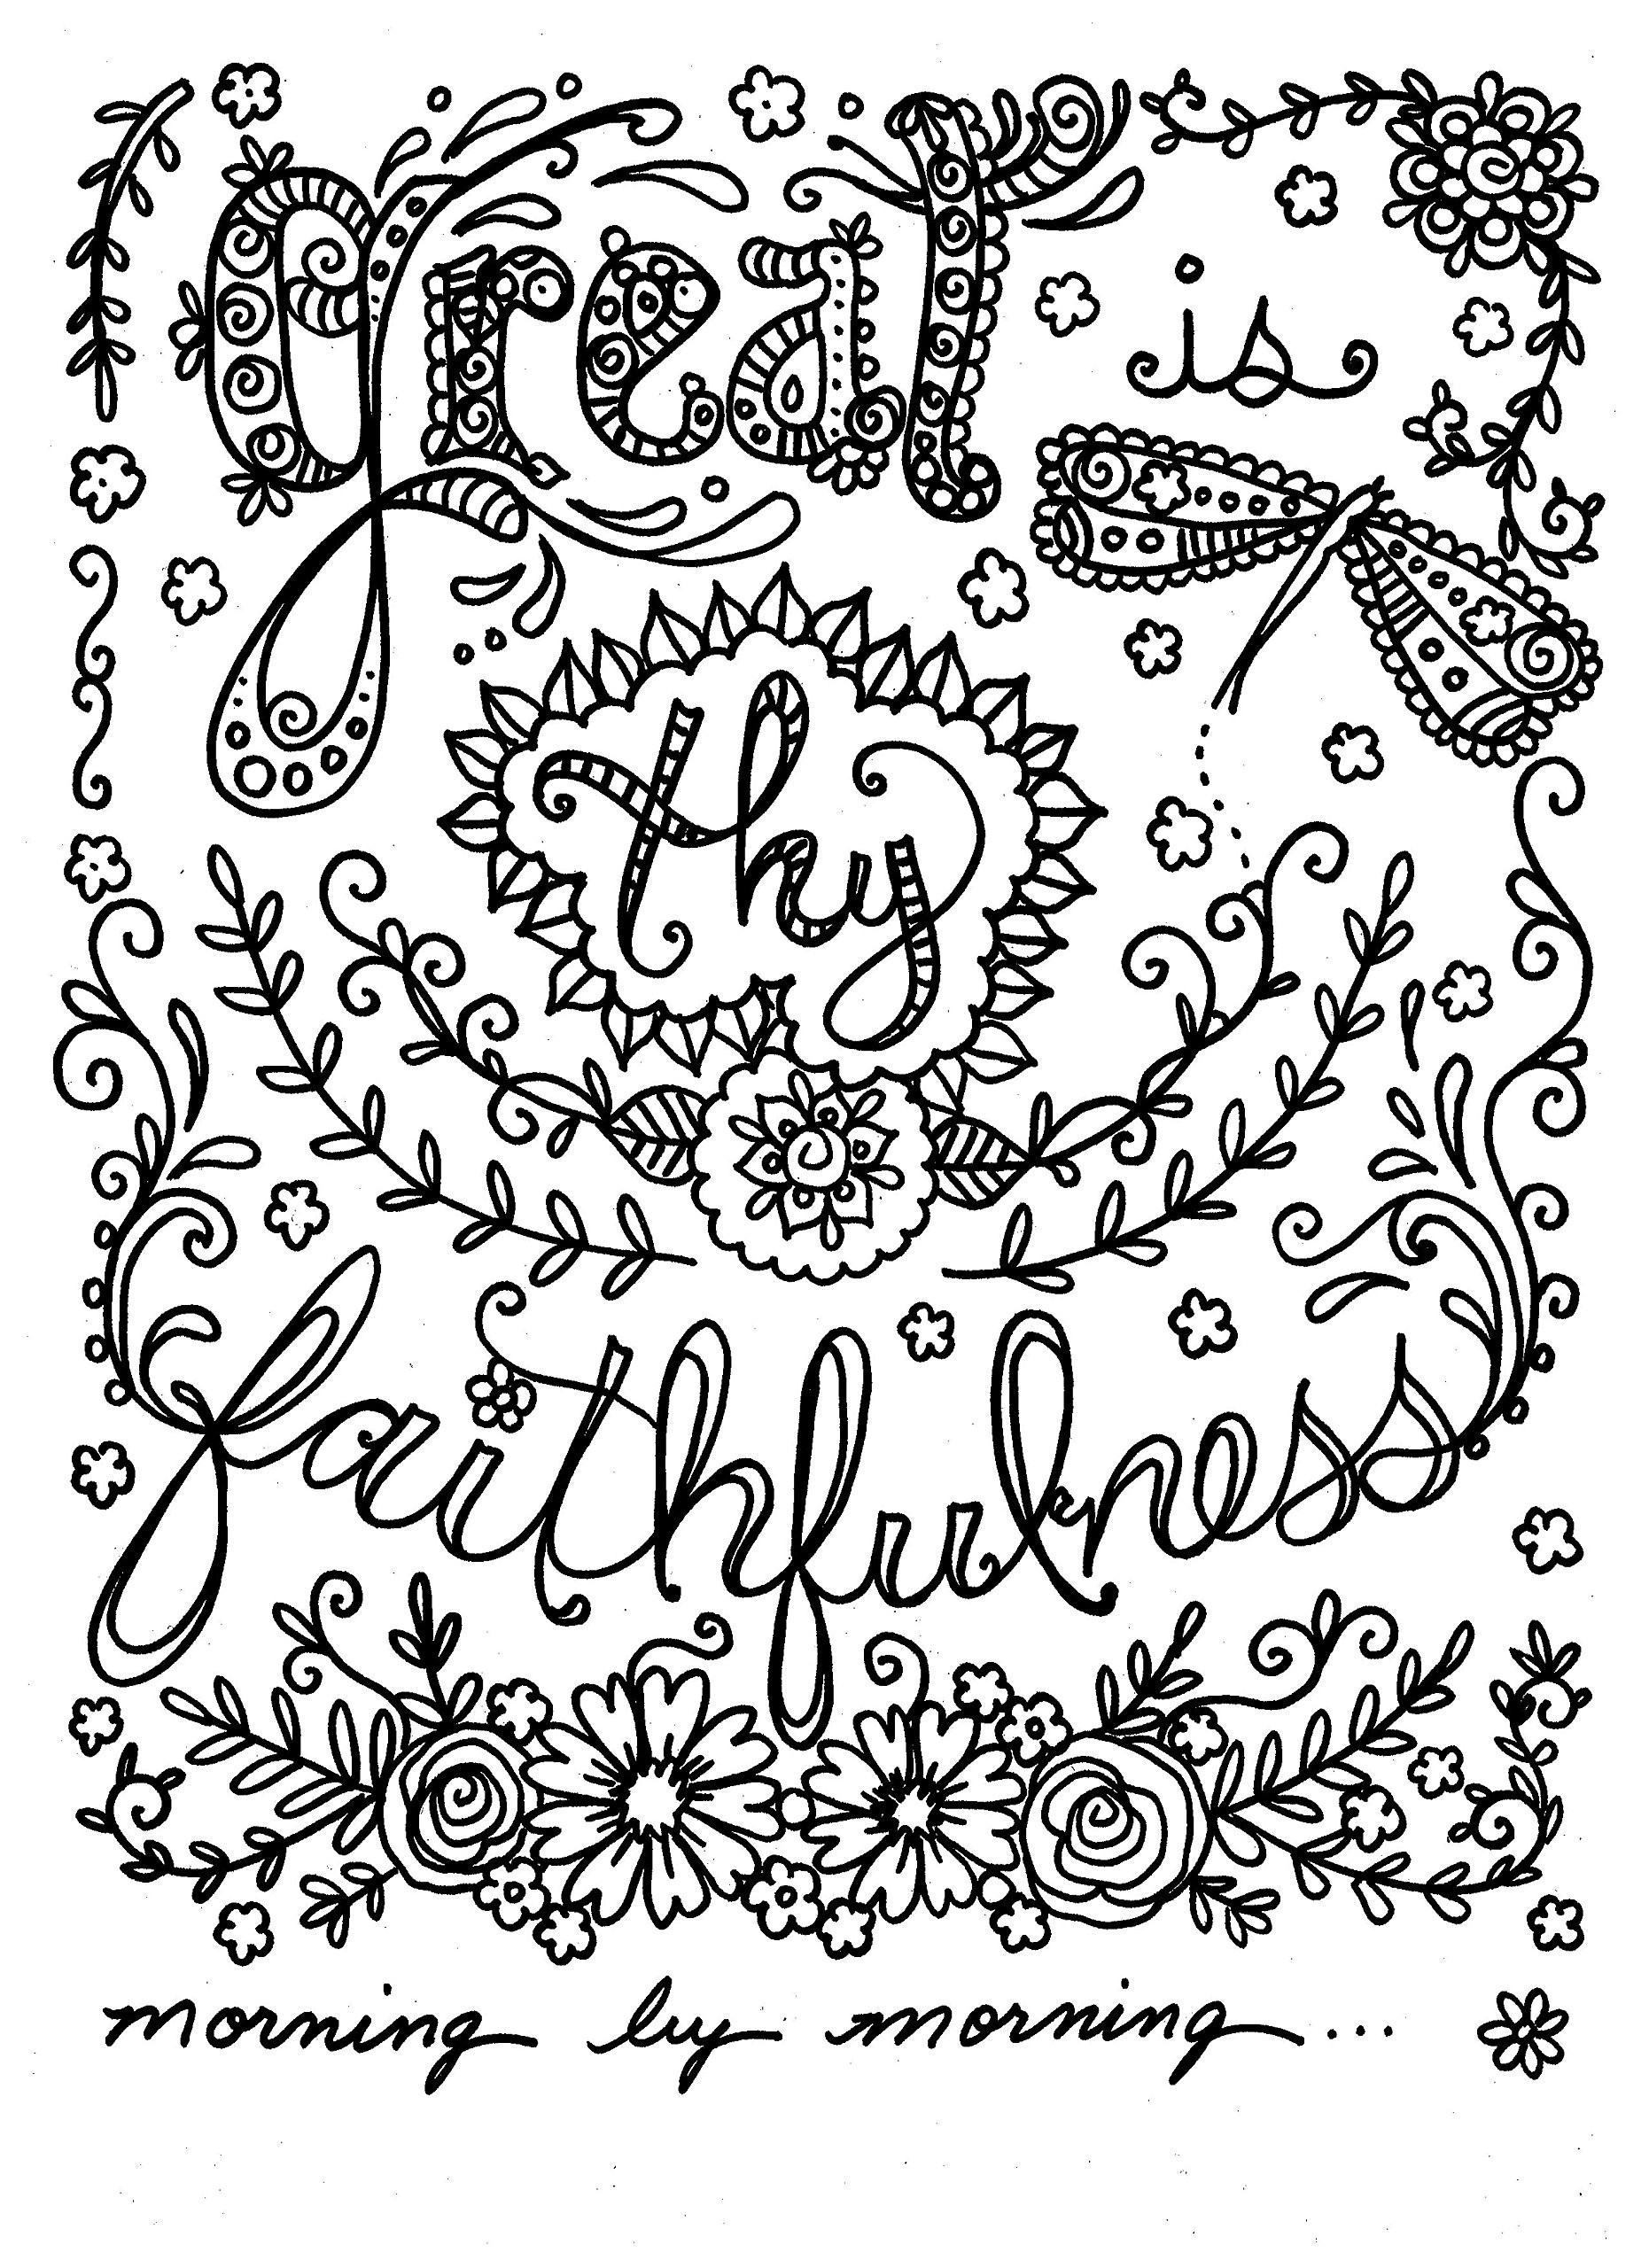 Biblical Coloring Pages For Adults  Bible Verse Coloring Pages for Adults Free Free Coloring